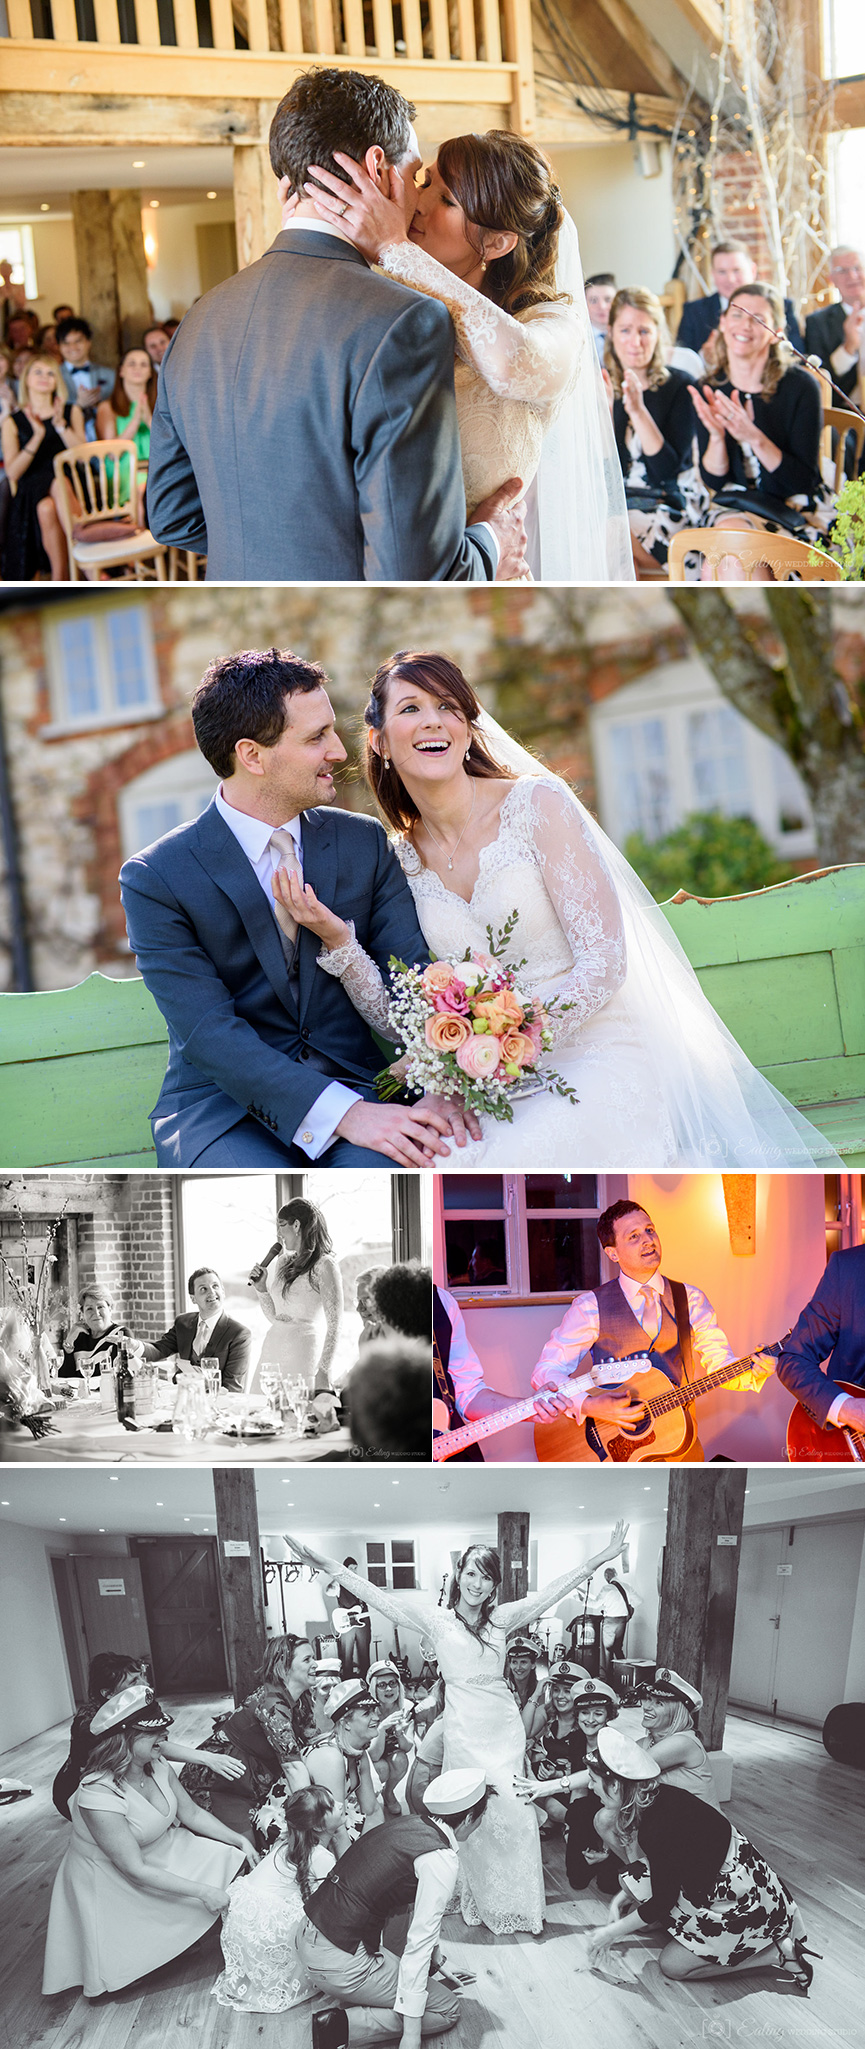 Real Wedding - Clare And Rohan's Handmade Spring Wedding At Bury Court Barn | CHWV